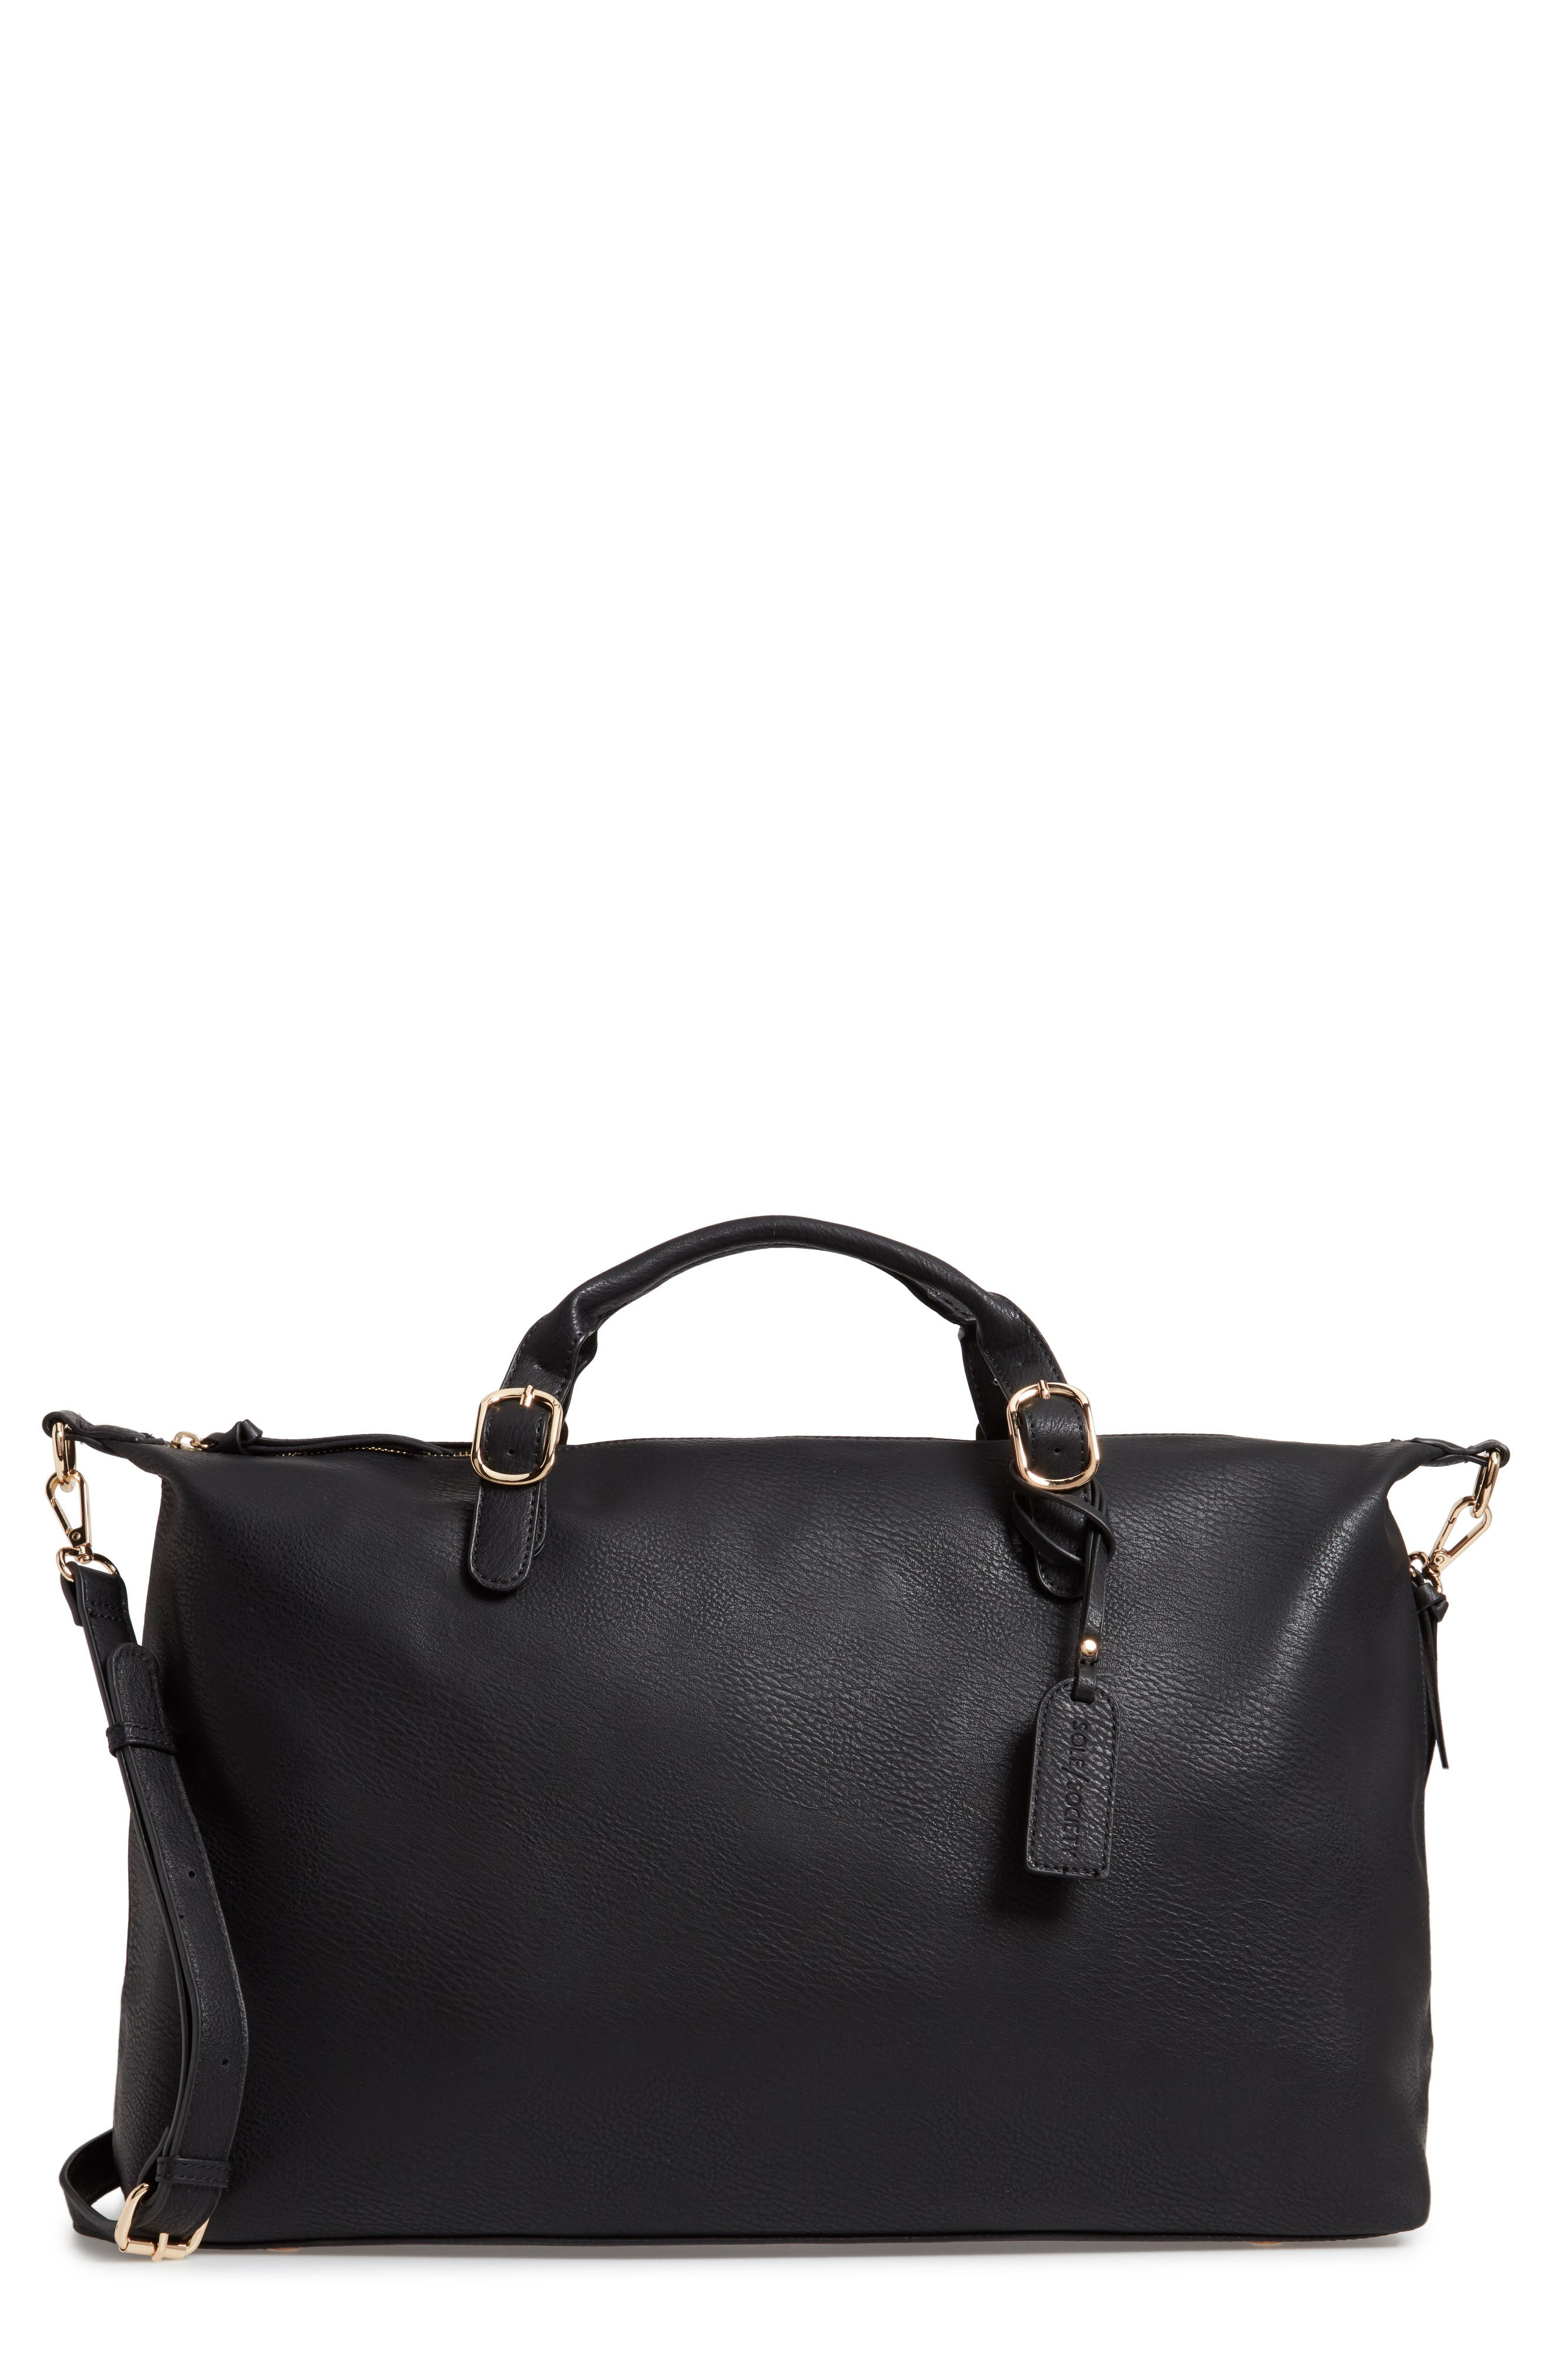 SOLE SOCIETY, Grant Faux Leather Weekend Bag, Main thumbnail 1, color, BLACK